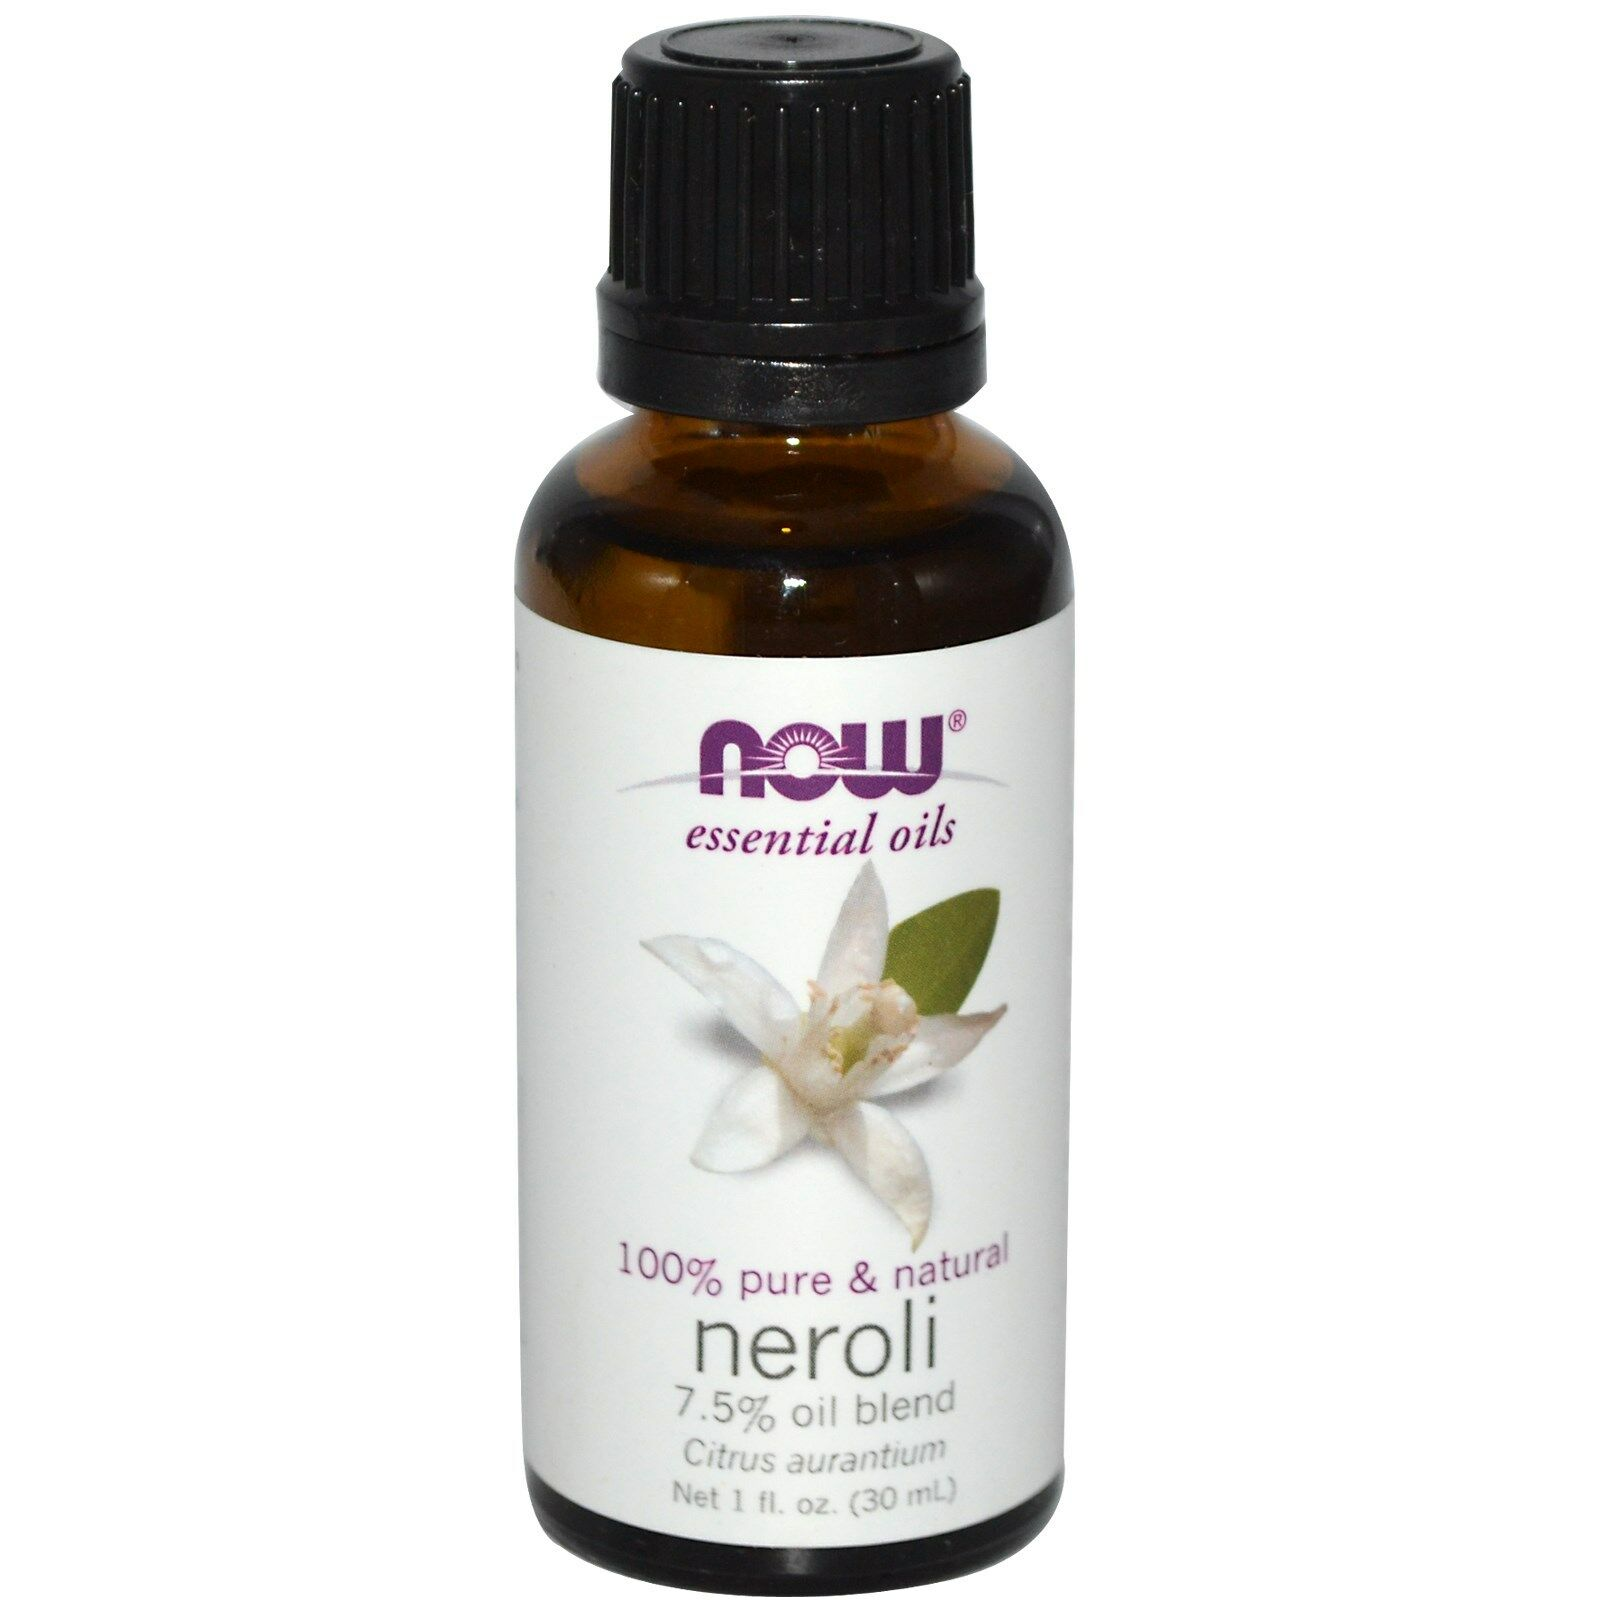 NOW Foods 1 oz Essential Oils and Blend Oils - FREE SHIPPING! Neroli 7.5% Blend